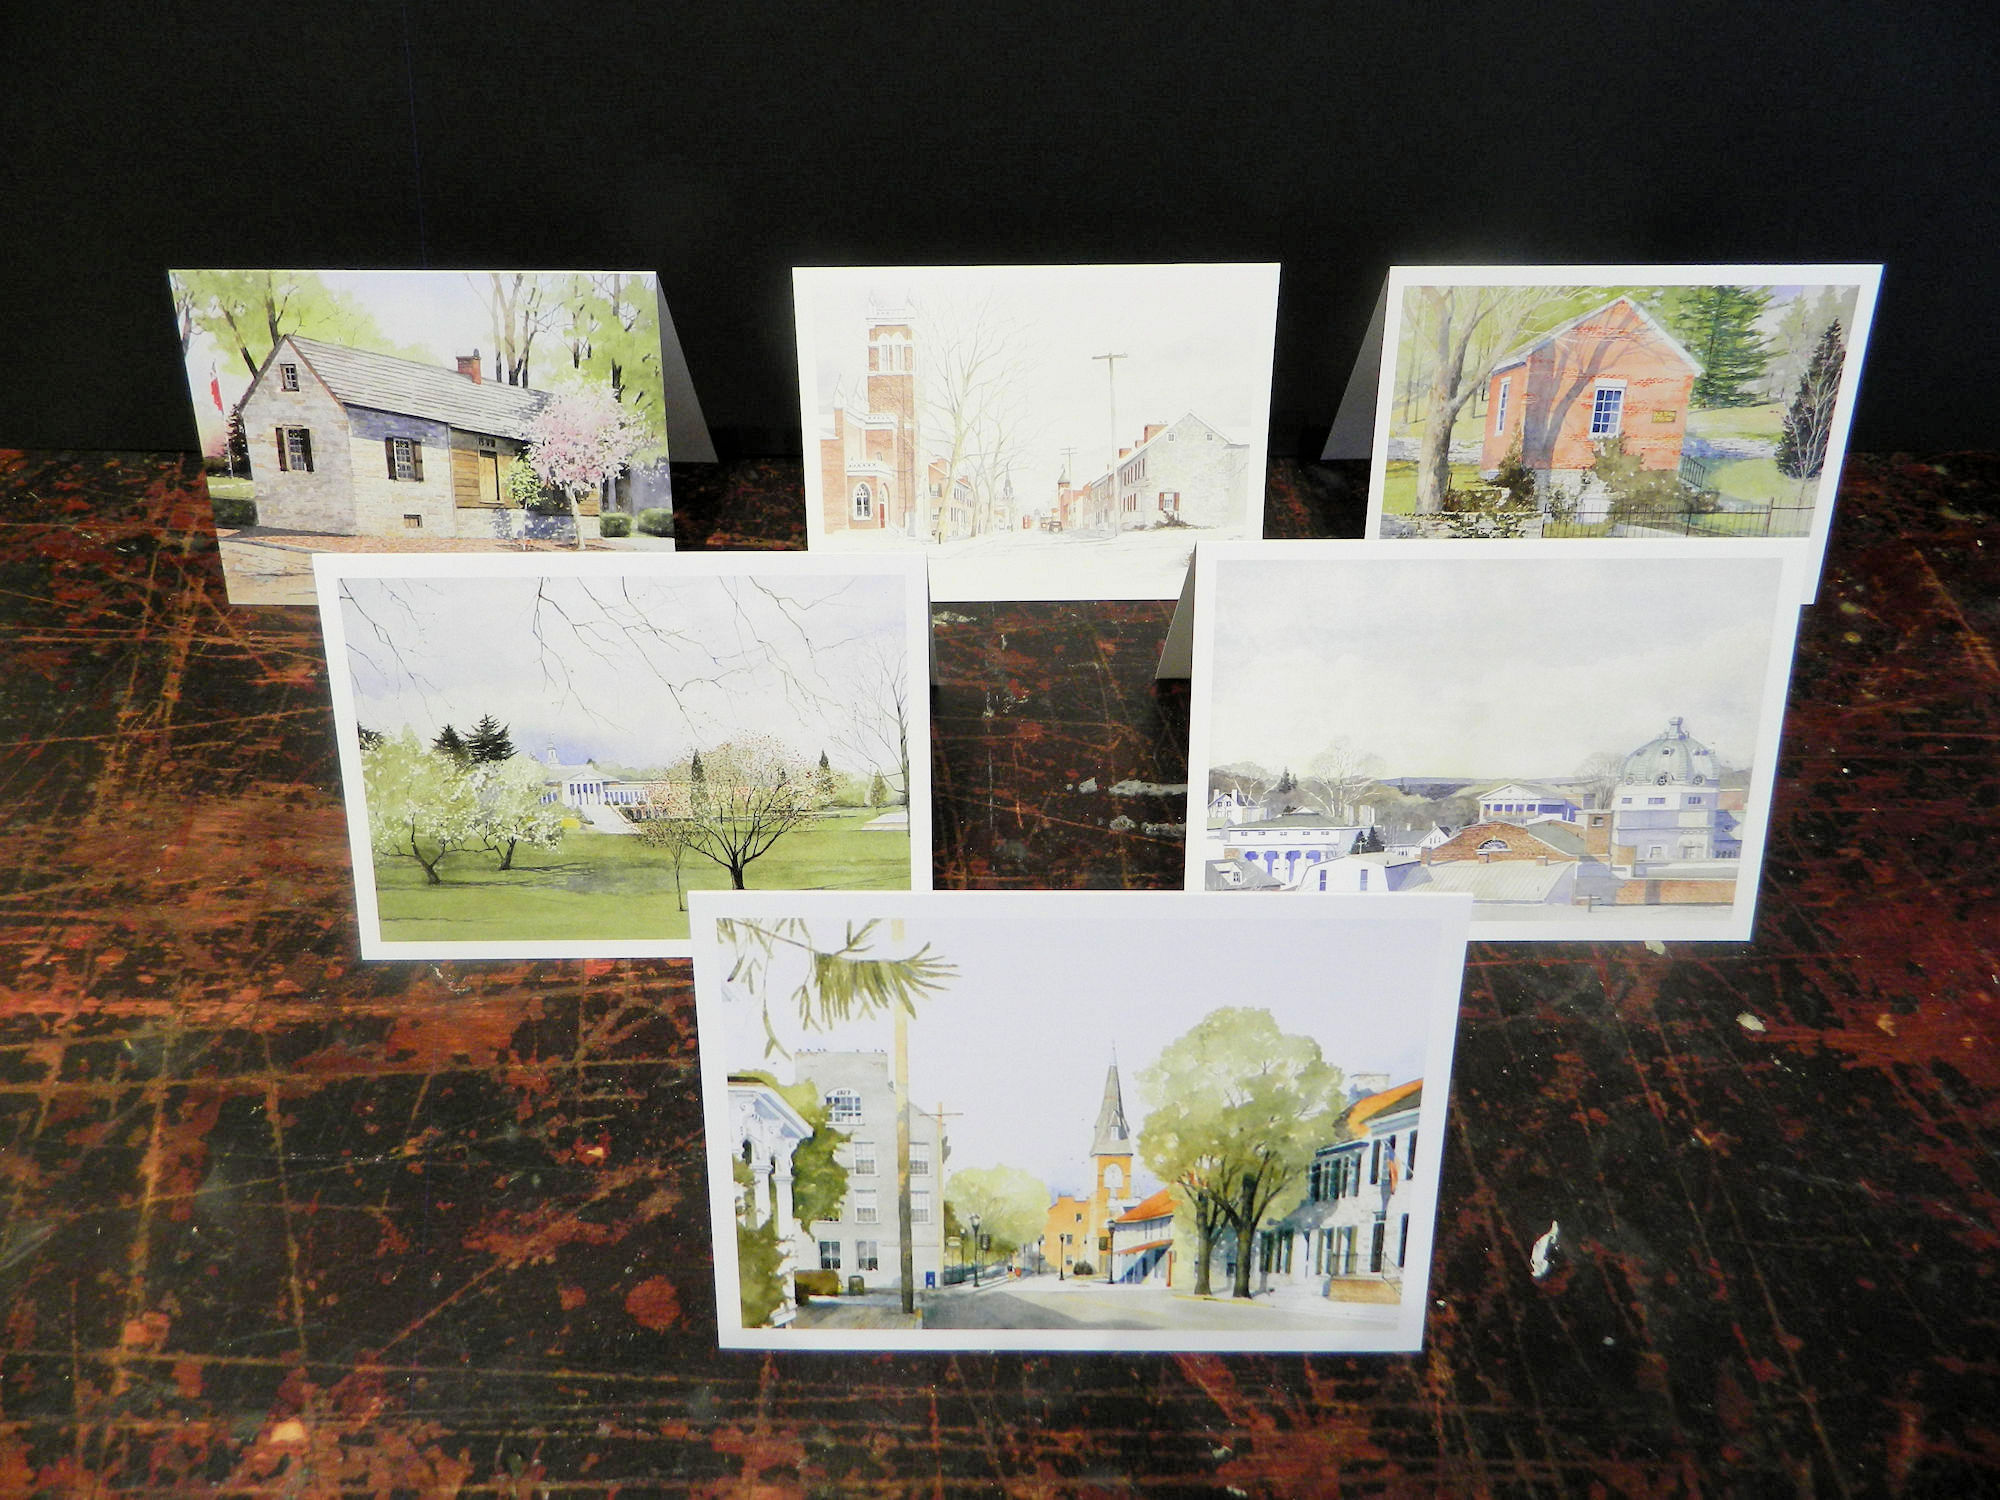 Notecards in this pack: 1827 | Handley High School | Winchester Rooftops II | George Washinton's Office | Water Street | Old Town Spring | 6-pack w/envelopes $18